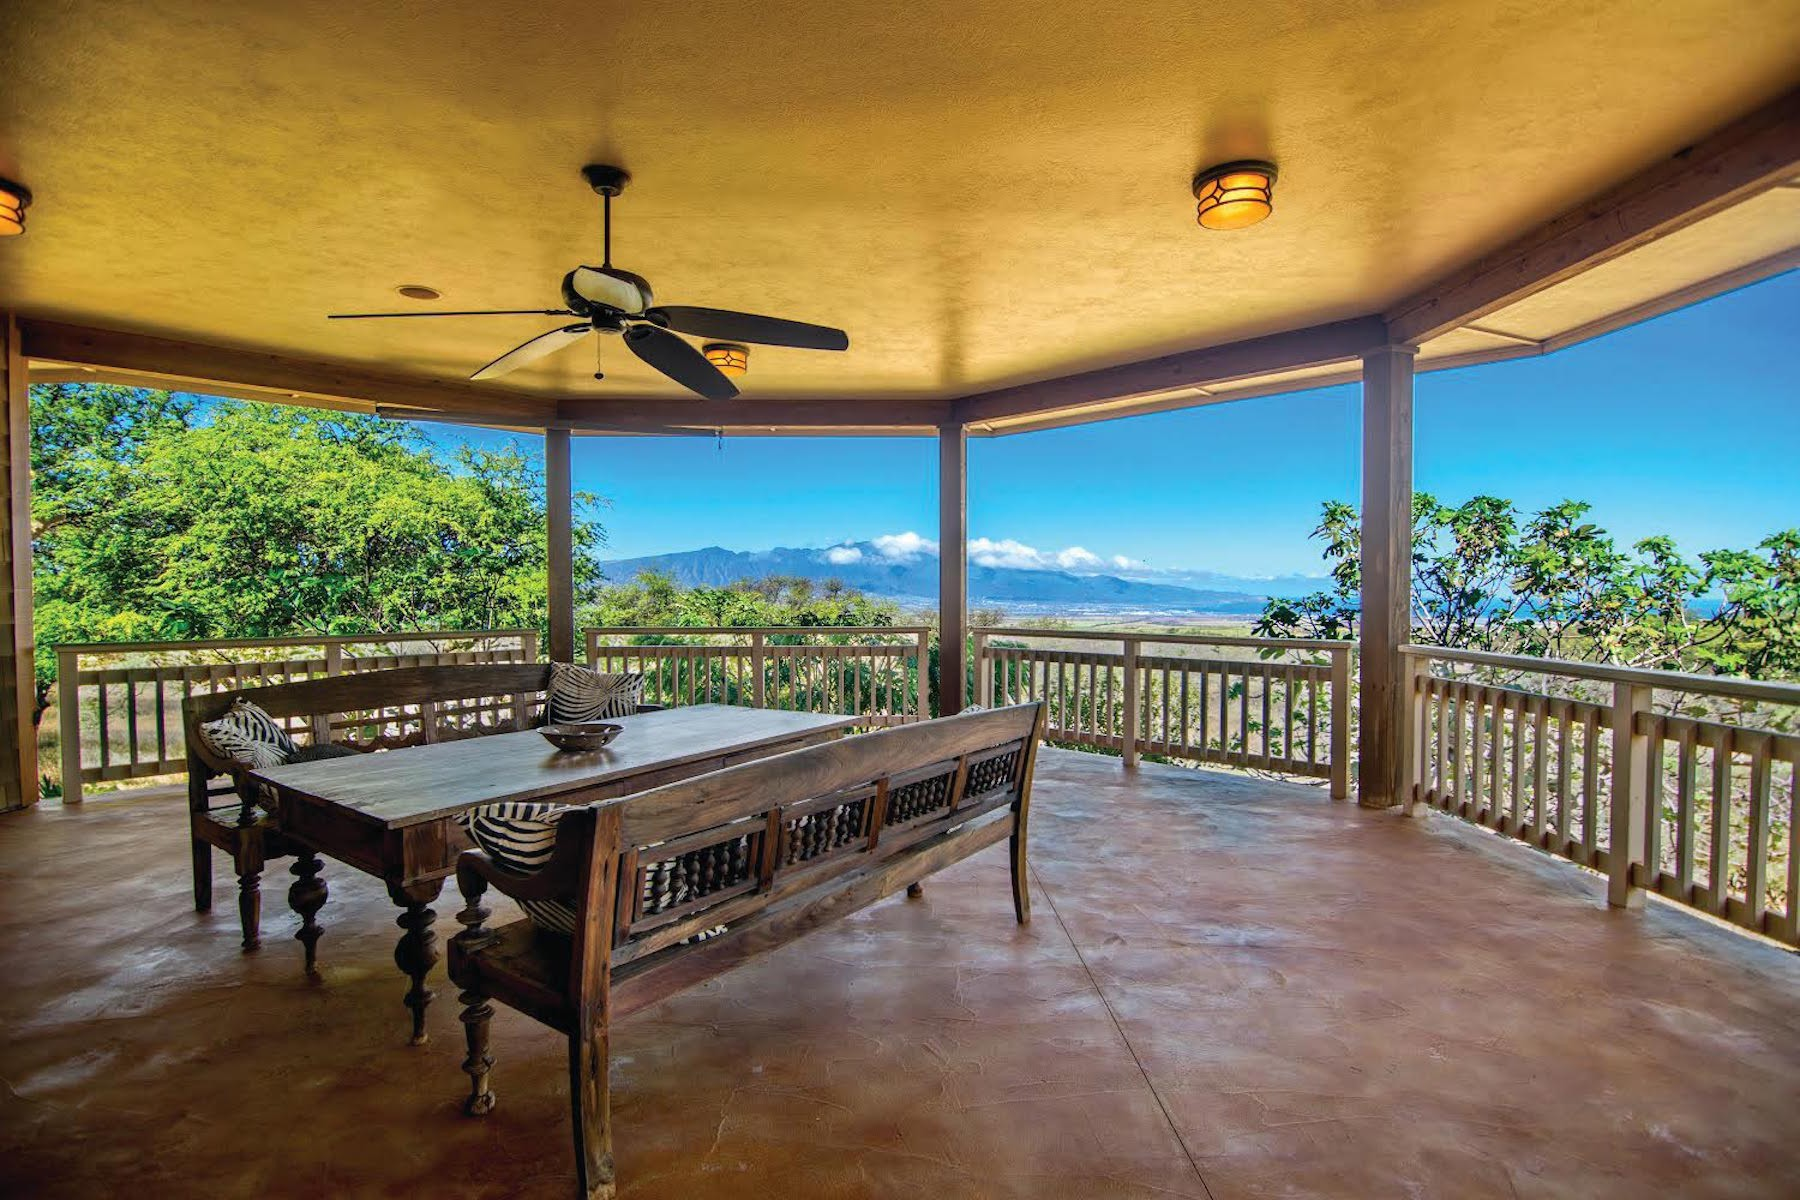 Casa Unifamiliar por un Venta en Maui Upcountry Classic Plantation Home On 6 Acres 101 Ikena Kai Place Kula, Hawaii, 96790 Estados Unidos